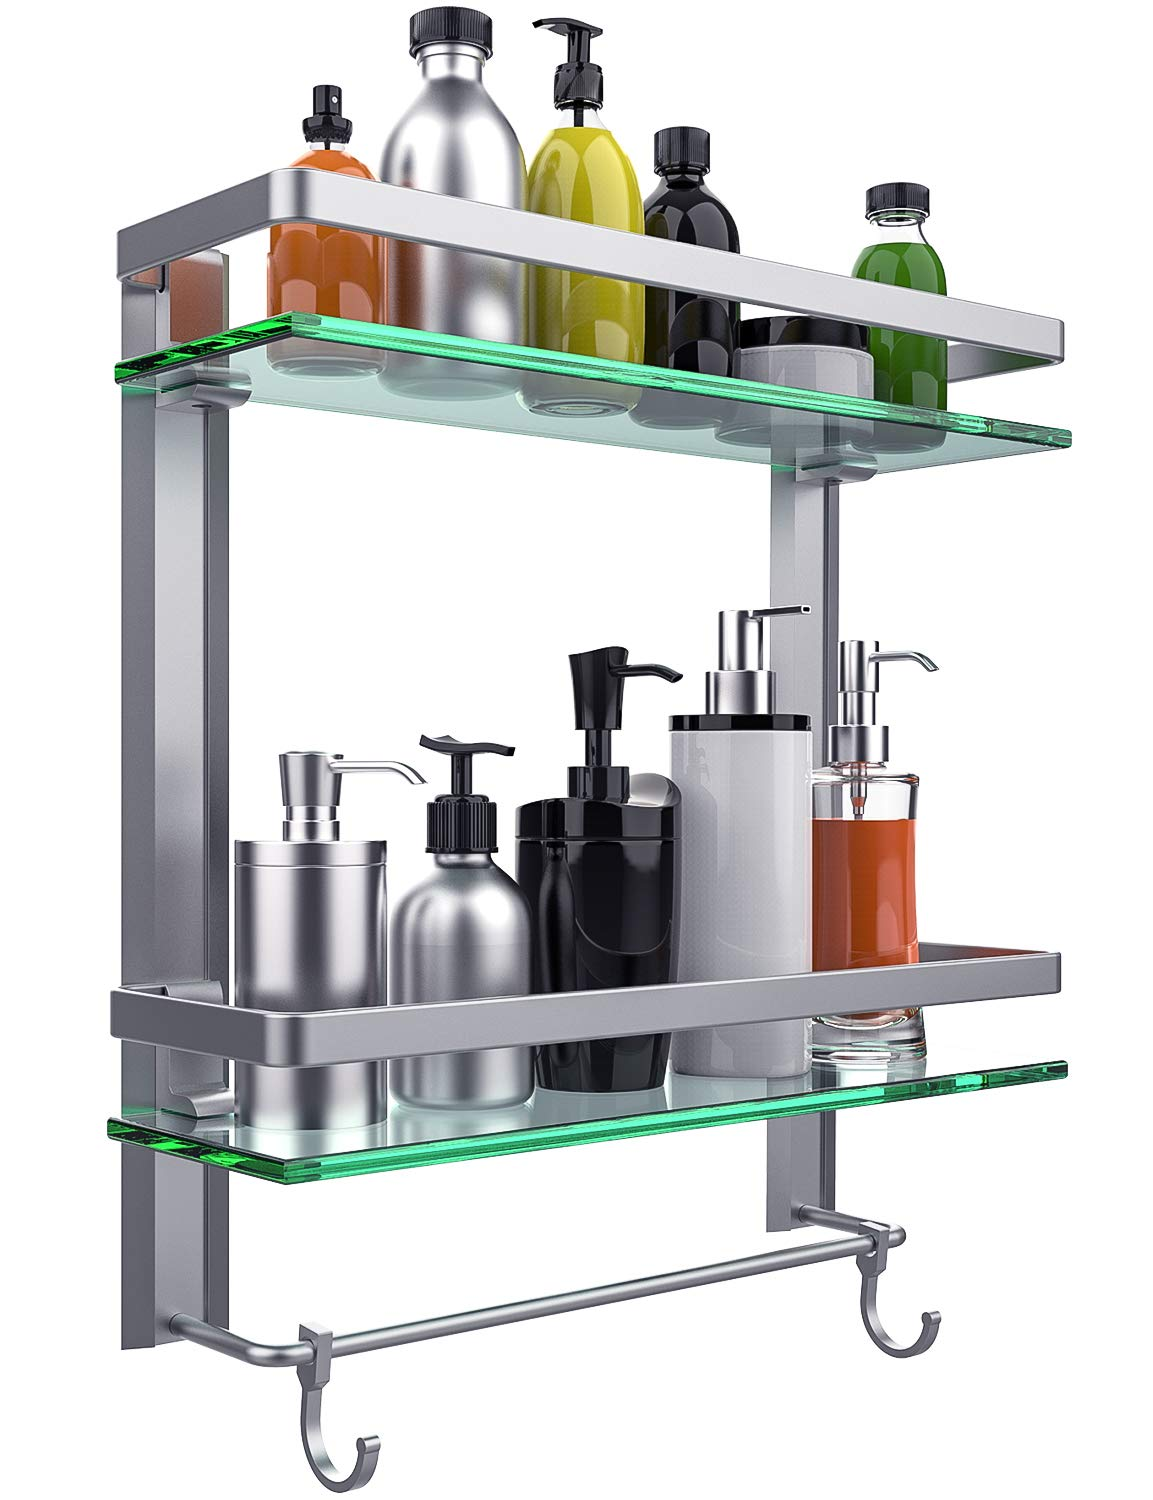 Vdomus Tempered Glass Bathroom Shelf, 2 Tier Shelf with Towel Bar Wall Mounted Shower Storage15.2 by 5 inches, Brushed Silver Finish (2 Tier Glass Shelf) by Vdomus